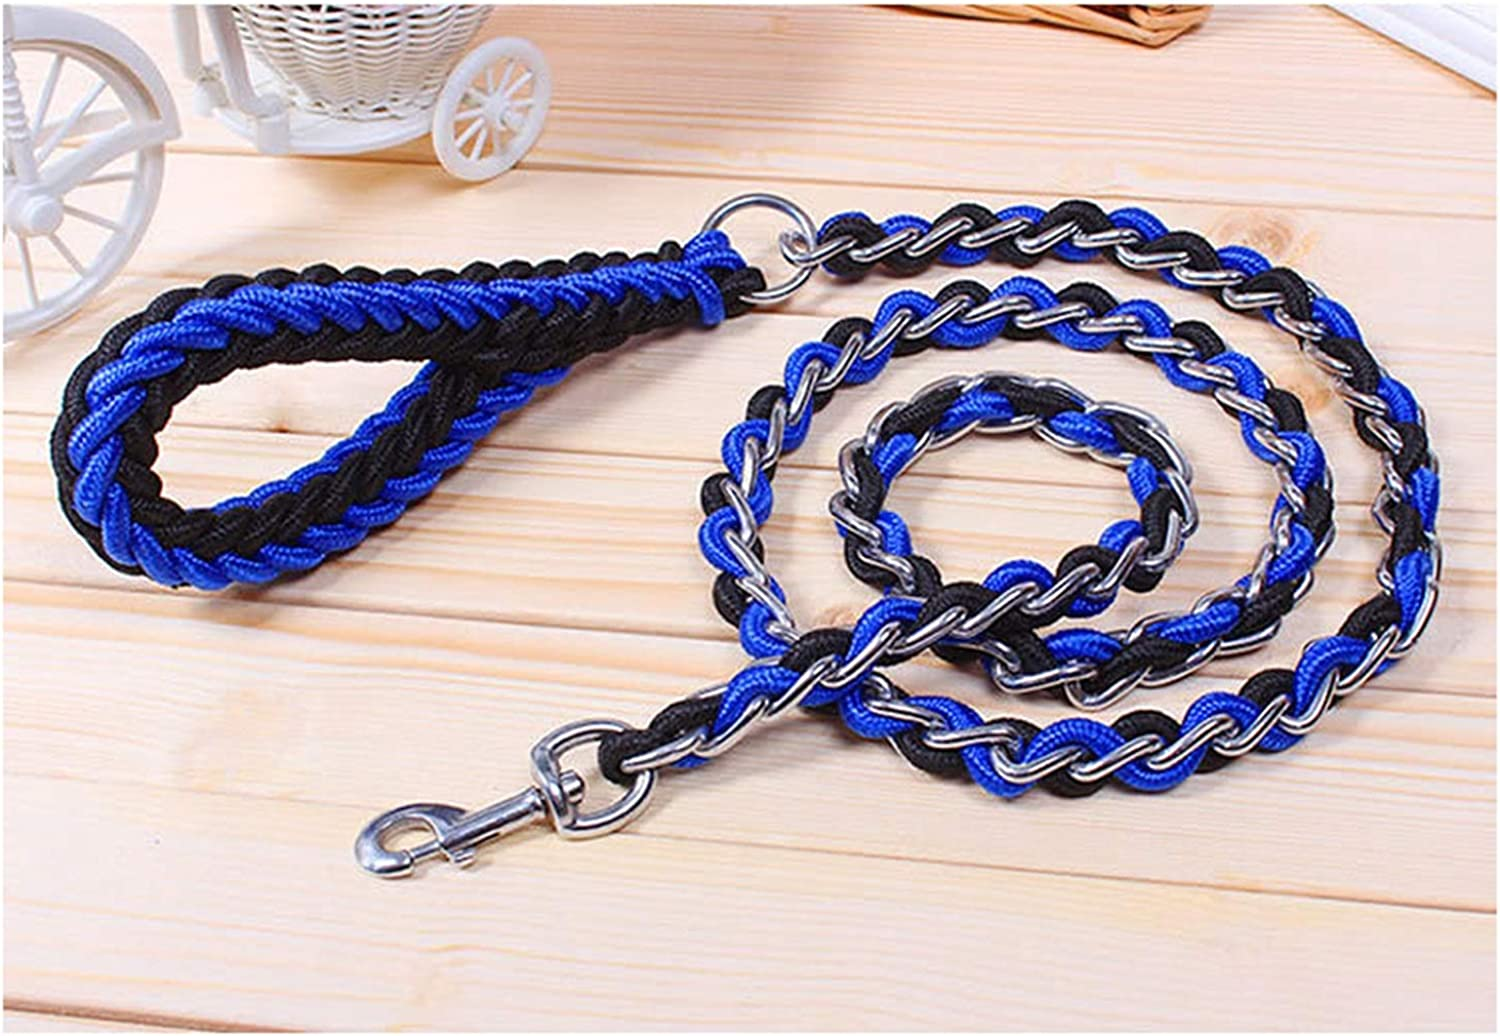 Beatybag Upgraded color Collar Rope Large Dog Leashes Iron Chain Bite Proof Pet Traction Rope for Medium Large Dogs bluee Black XL